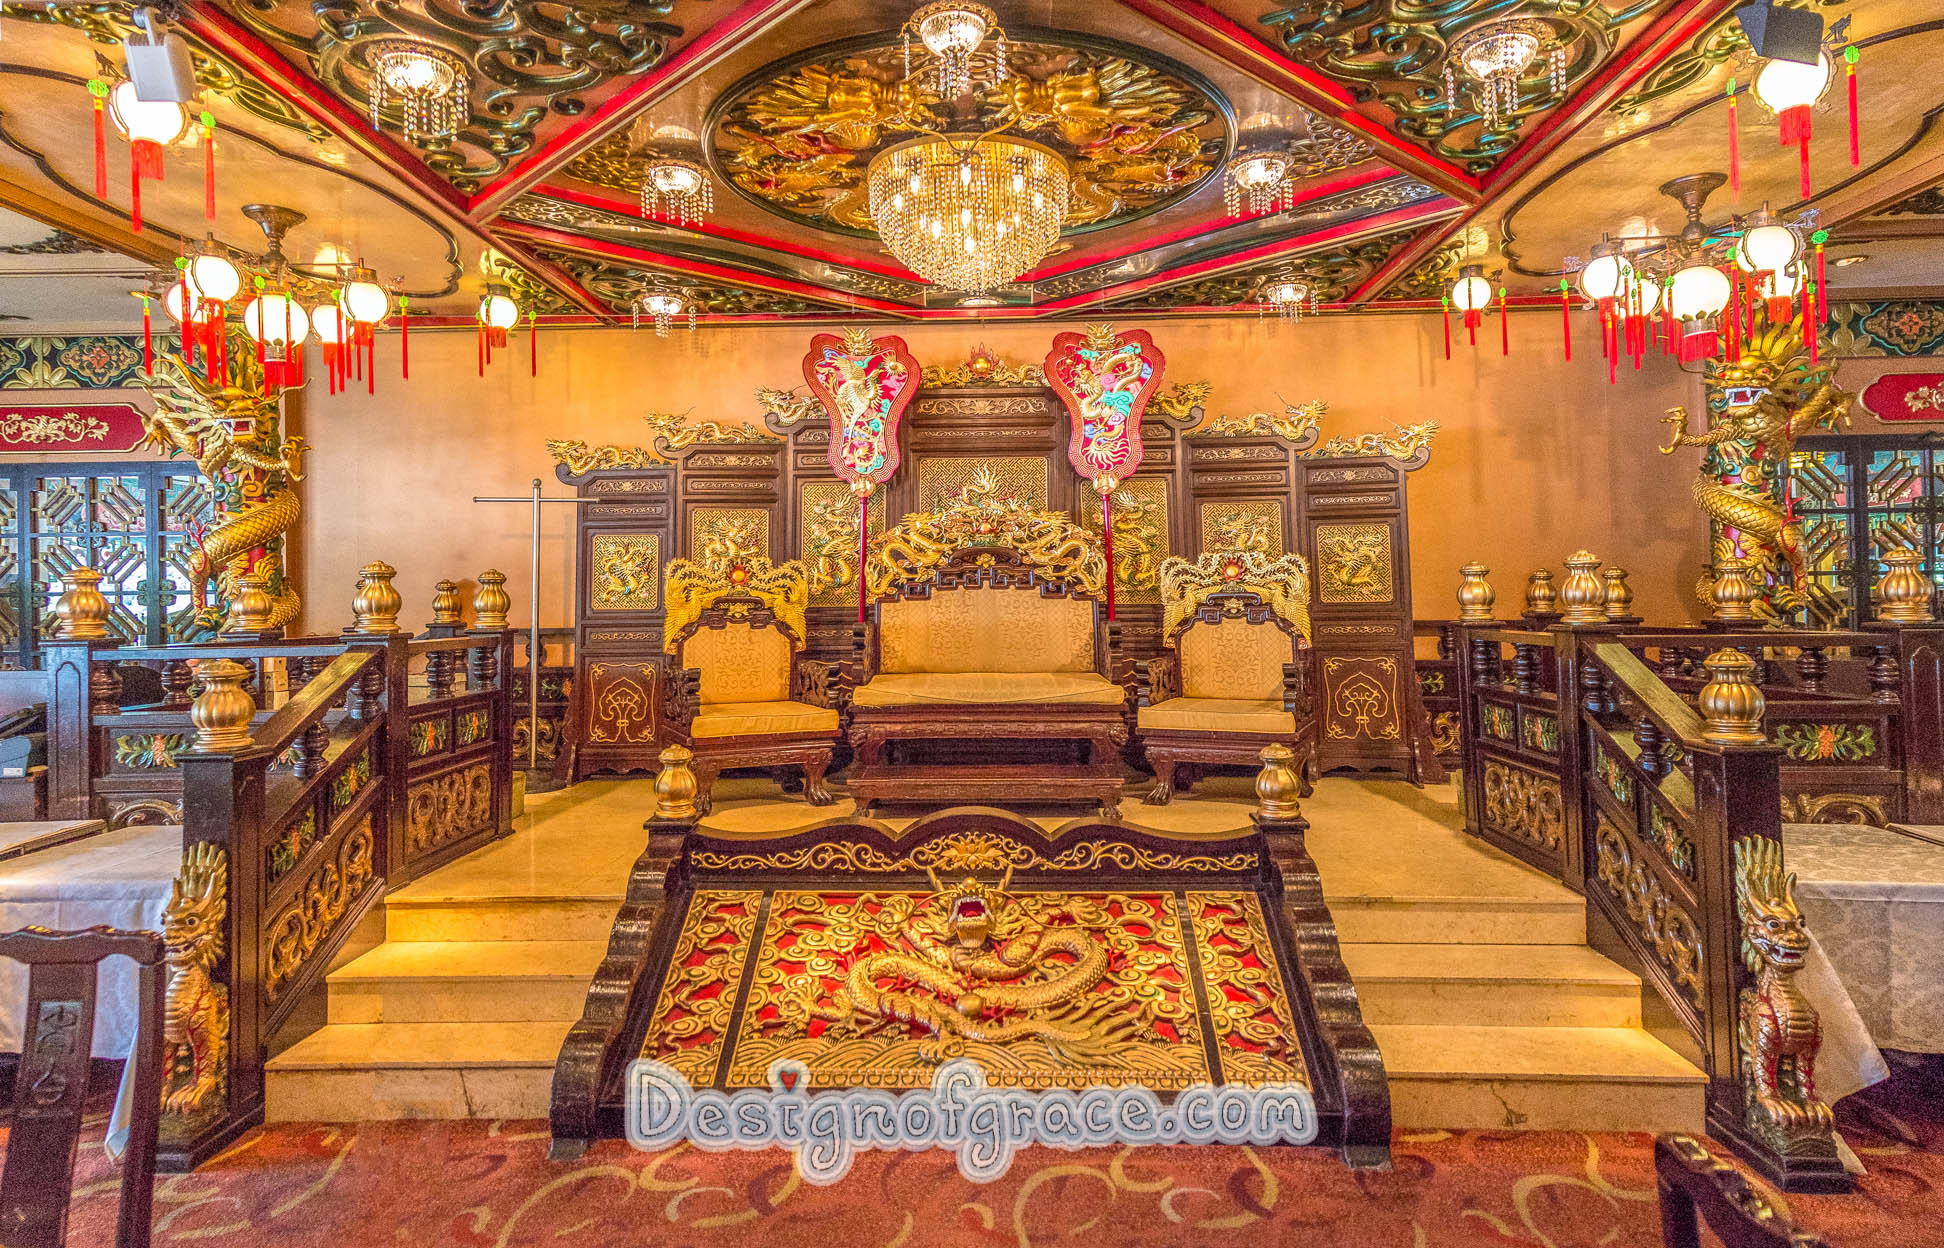 A Very elaborate gold and red throne benches at Jumbo Kingdom in Hong Kong